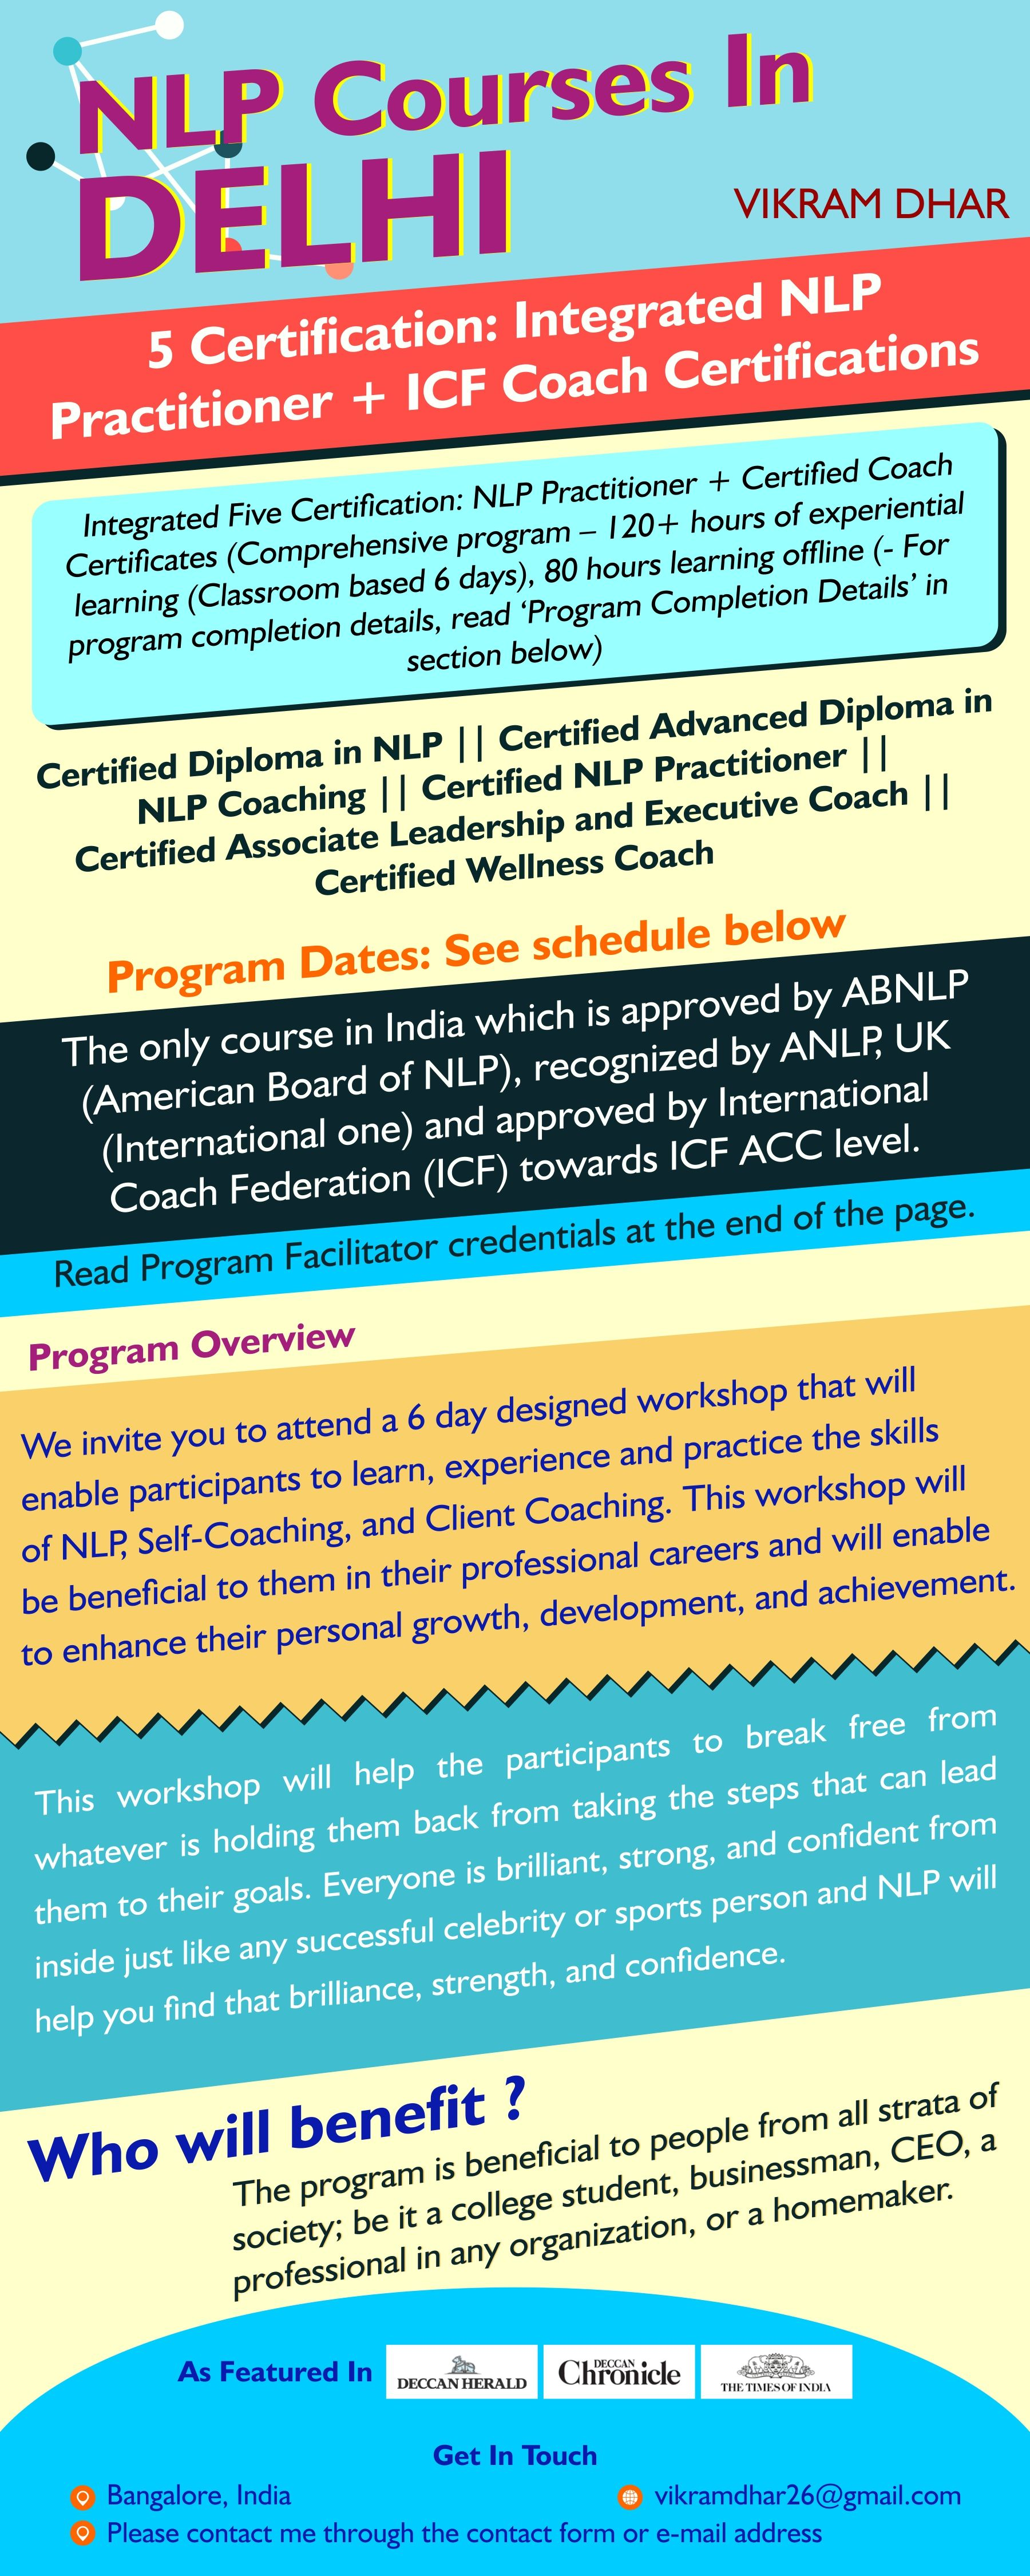 Nlp courses in delhi with Vikram Dhar Vikram is an ...